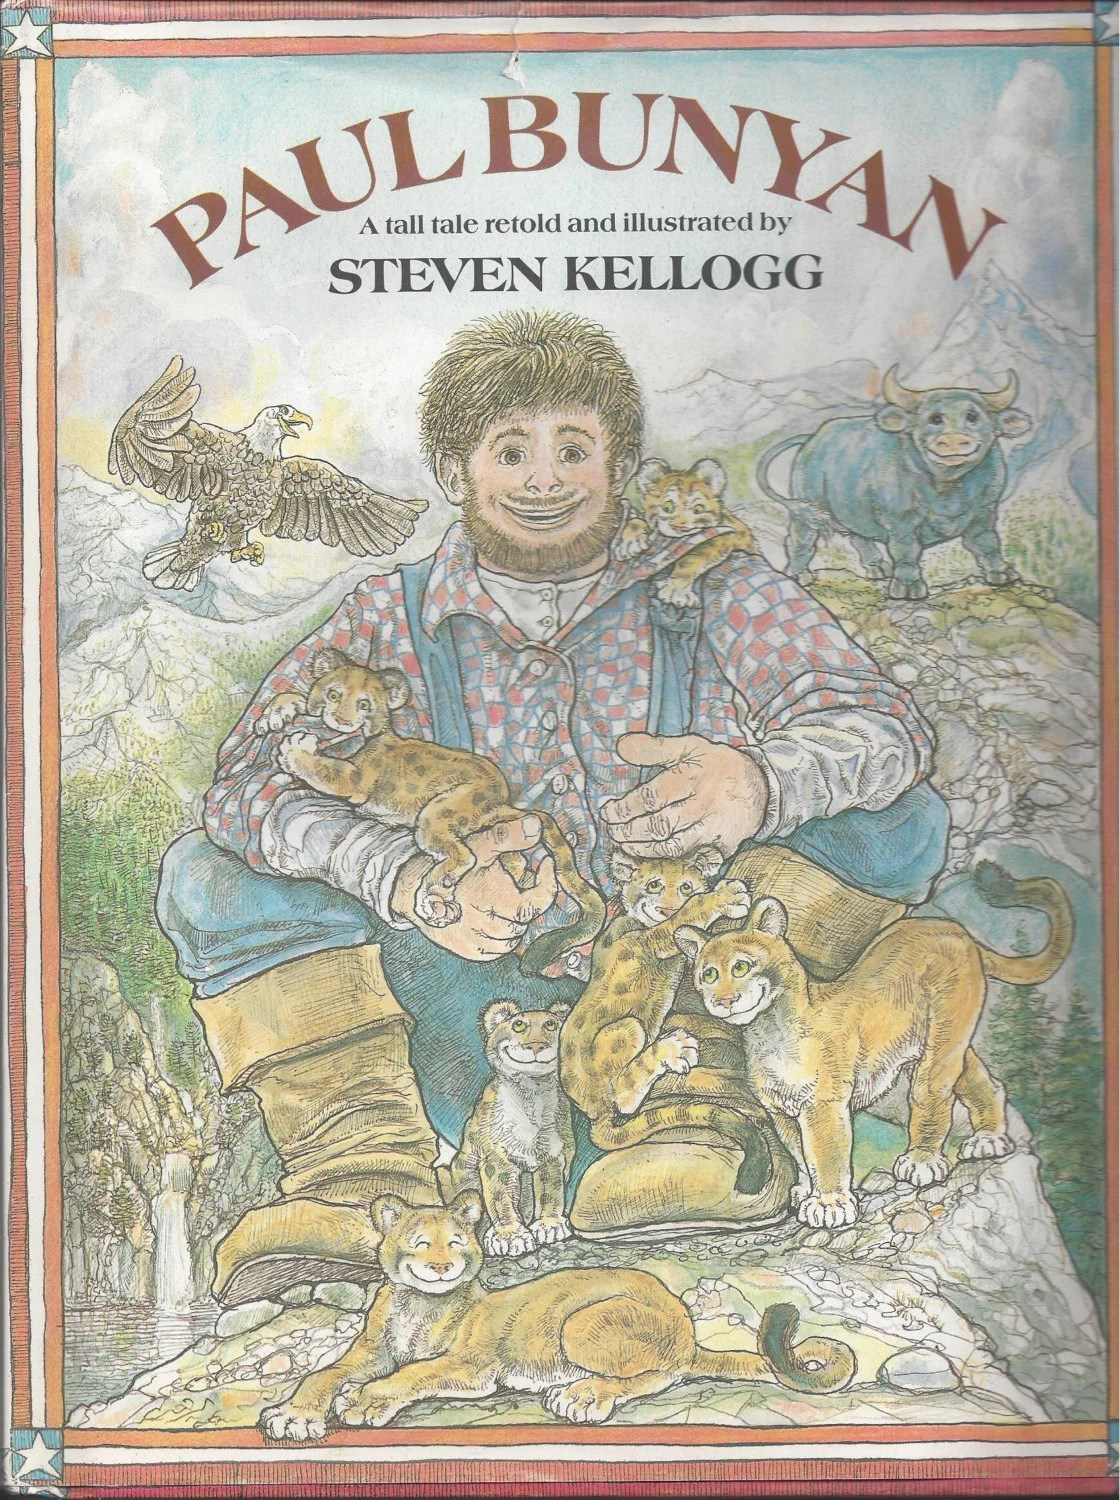 Paul Bunyan A Tall Tale Retold And Illustrated By Steven